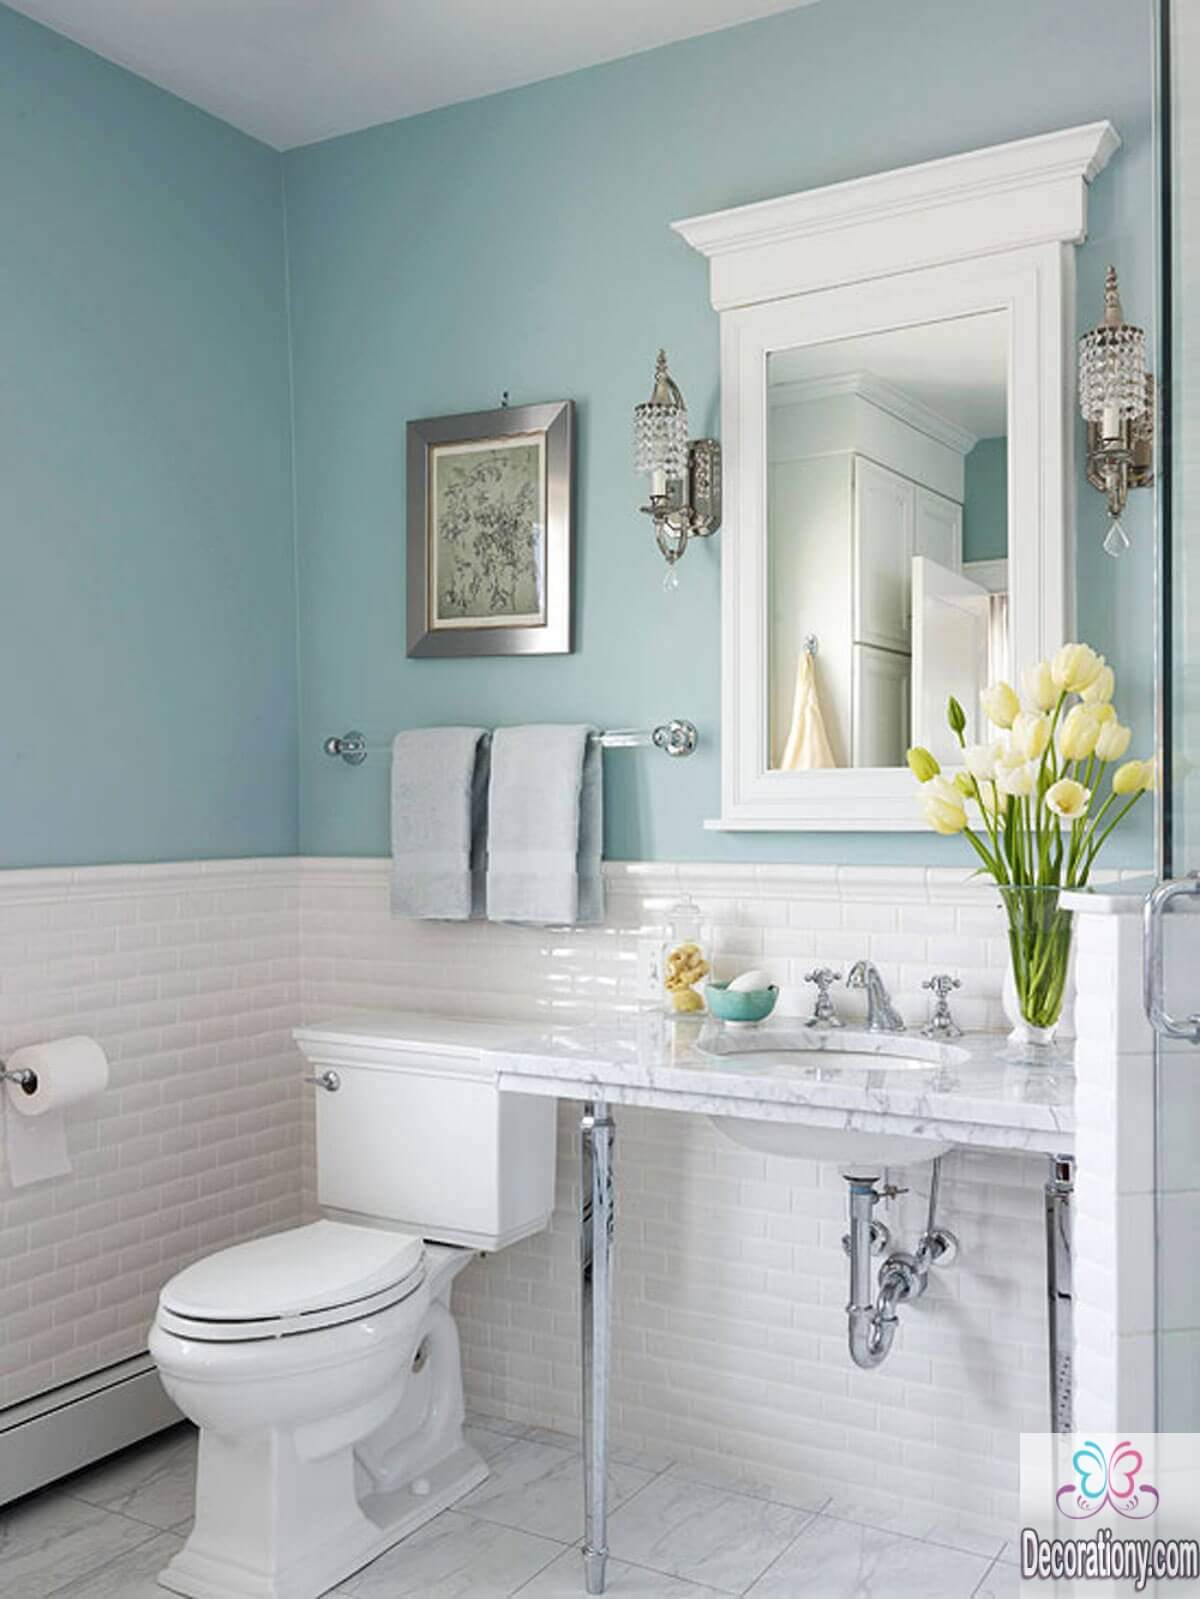 10 affordable colors for small bathrooms decoration y Interior design ideas for small bathrooms